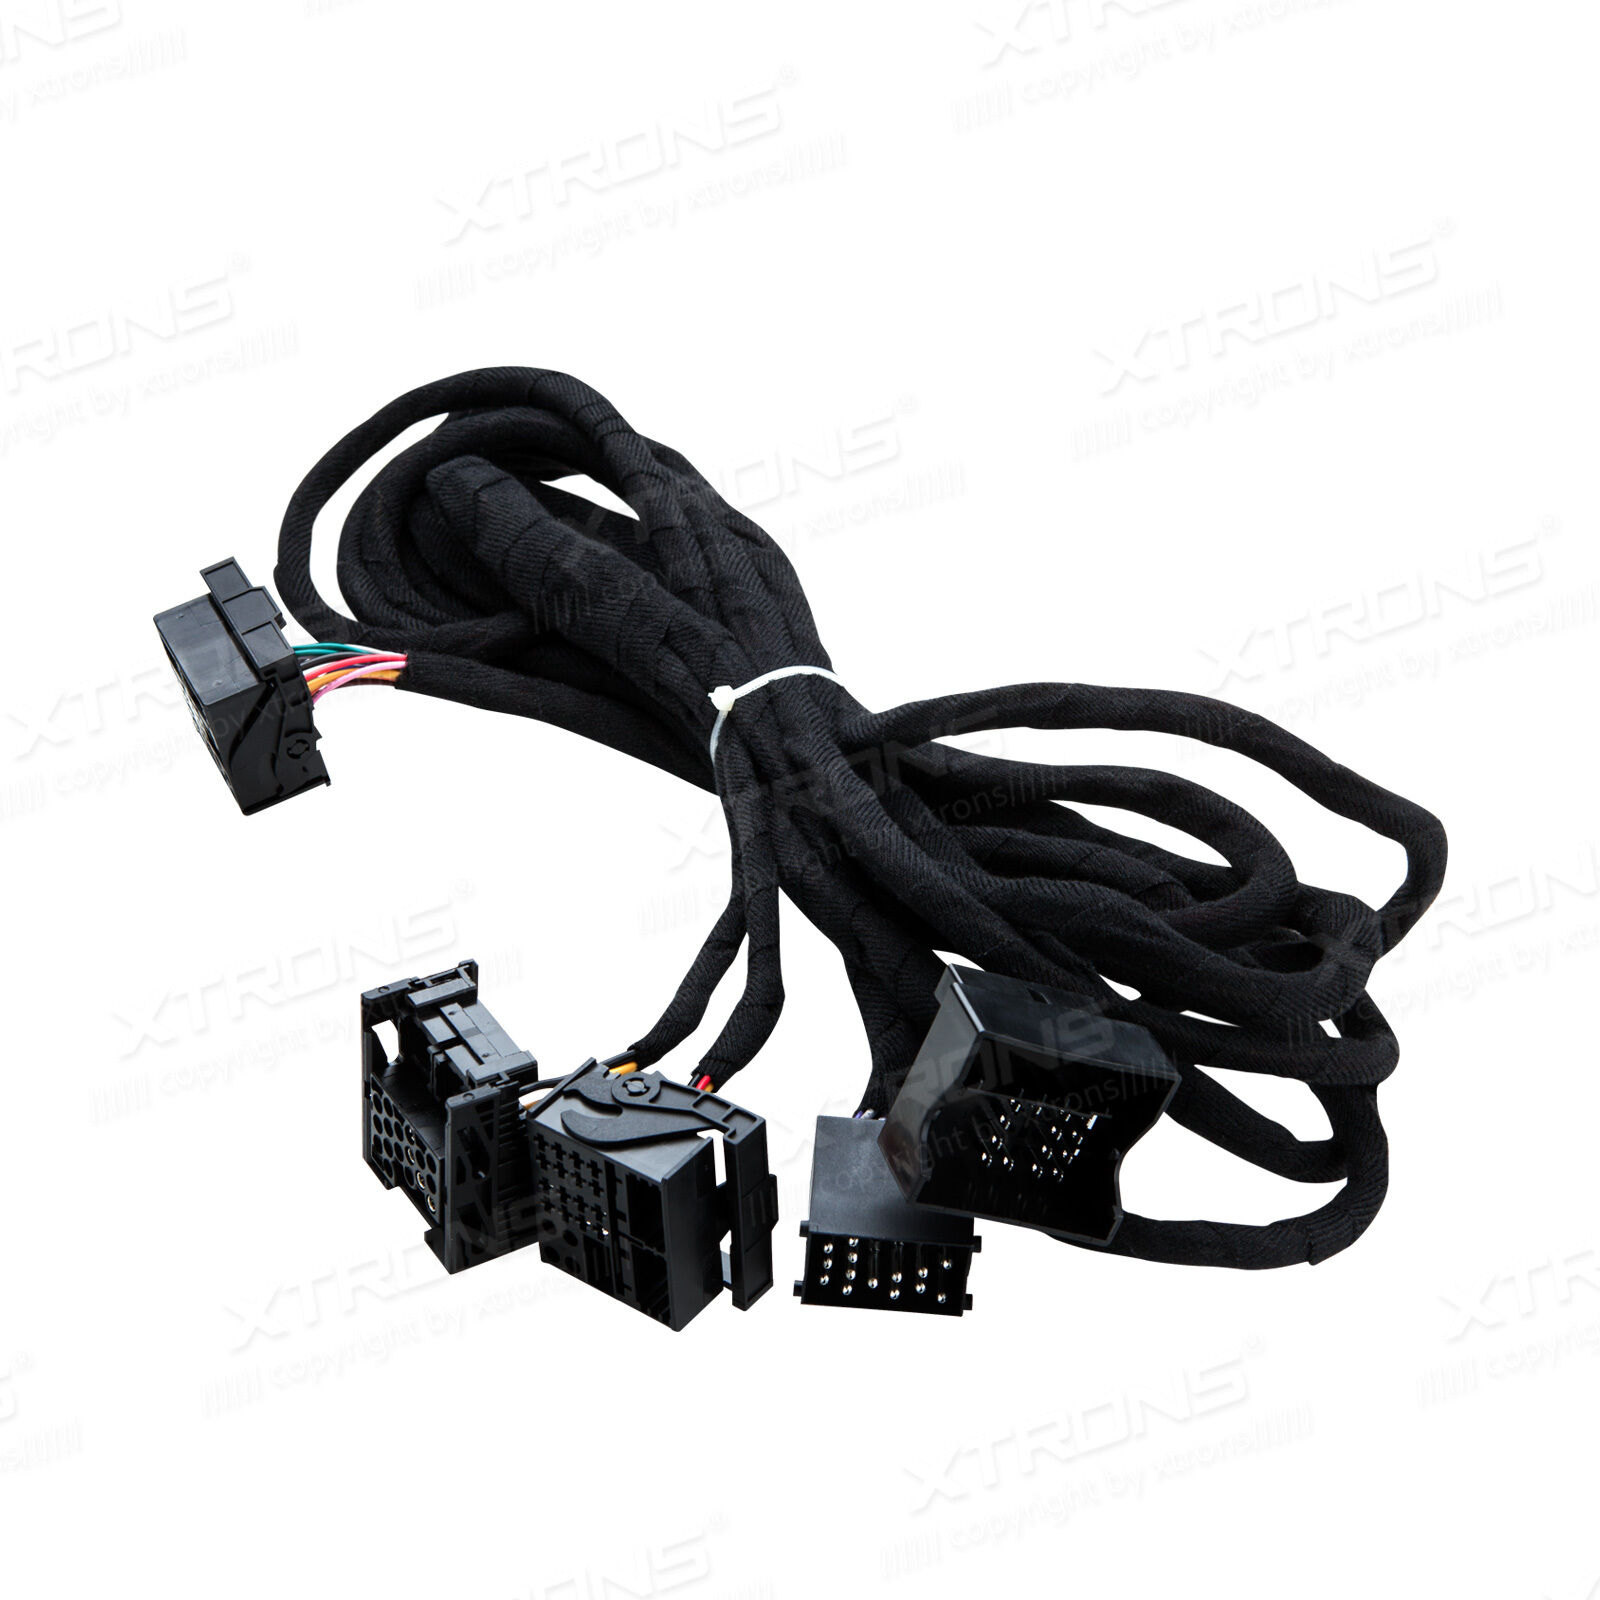 Car Stereo Iso Wiring Harness Extra Long 6m Cable Adapter For Bmw E39 Speaker Norton Secured Powered By Verisign